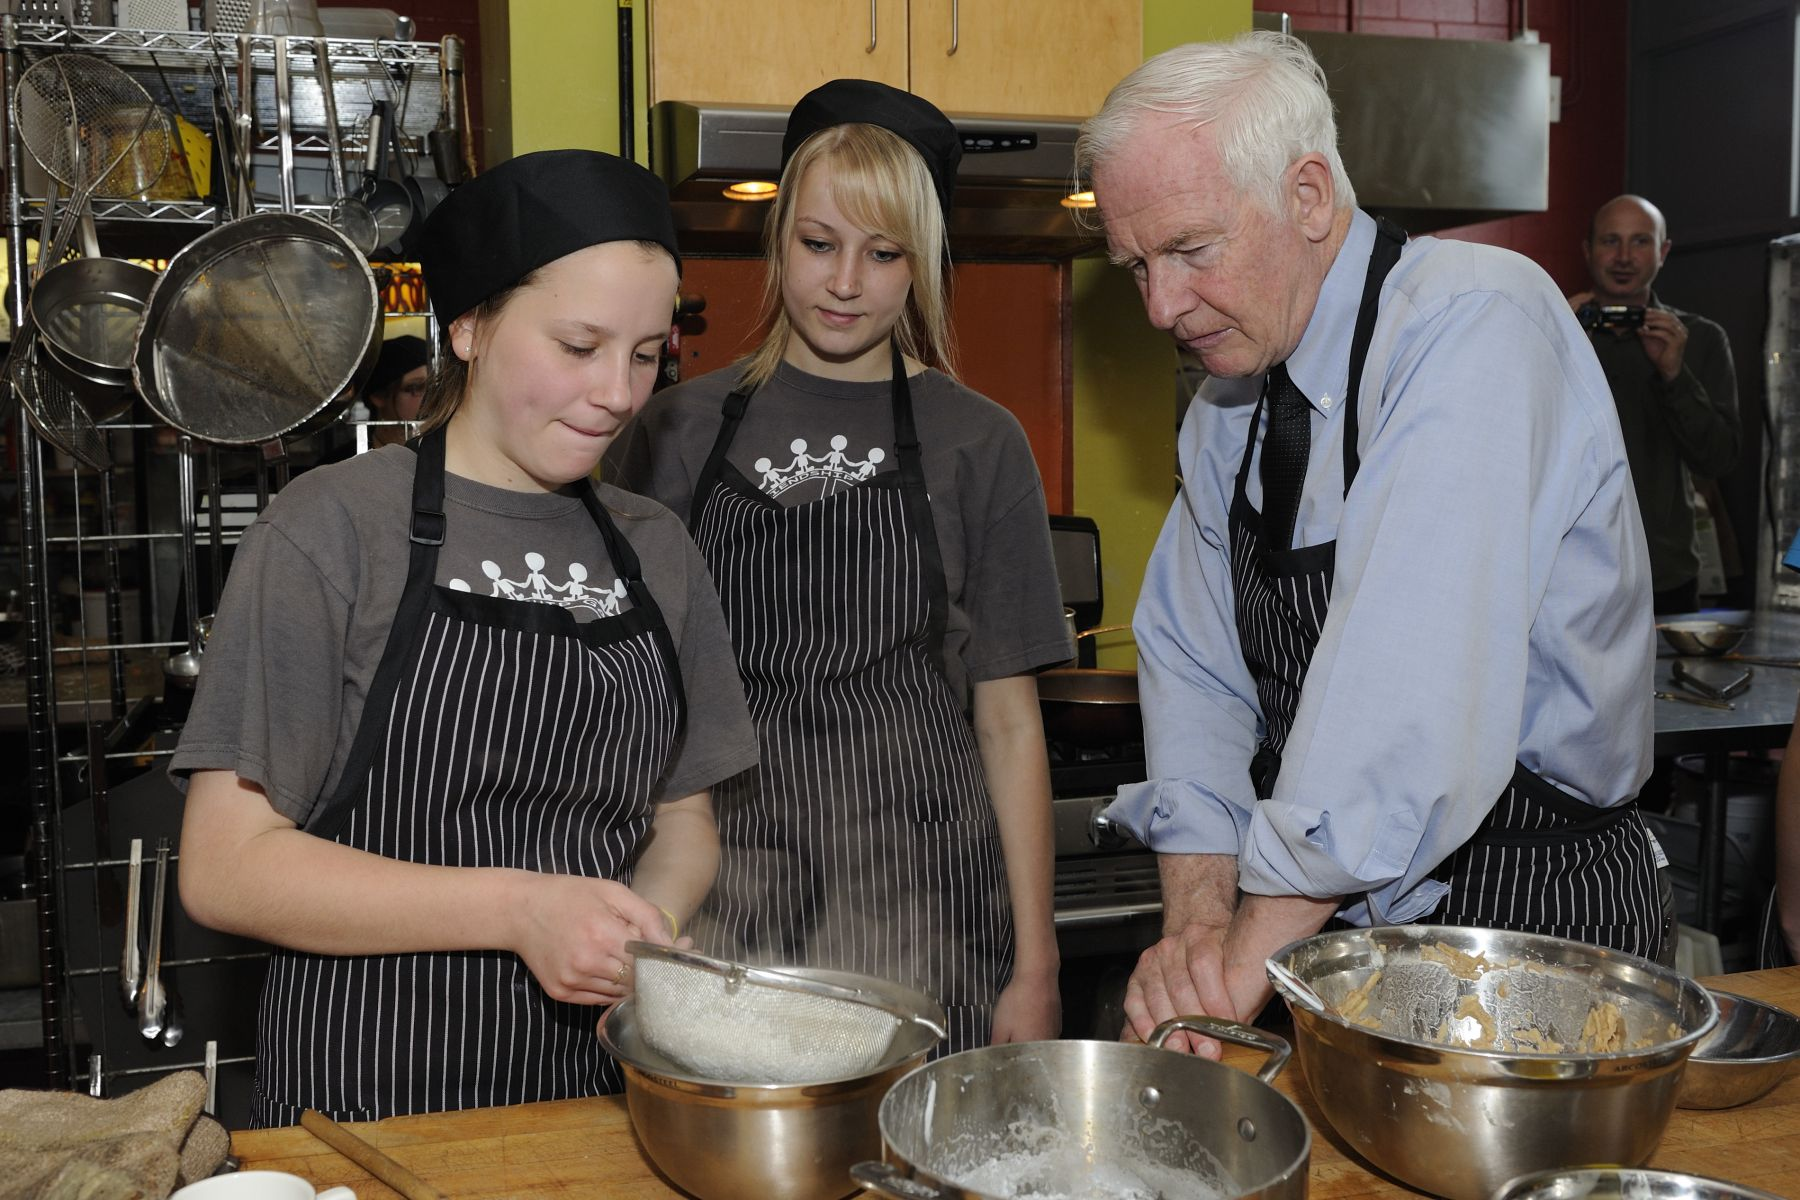 Their Excellencies joined students from Stratford Northwestern Secondary School for lunch at the Screaming Avocado Café, a part of the school's culinary arts program.